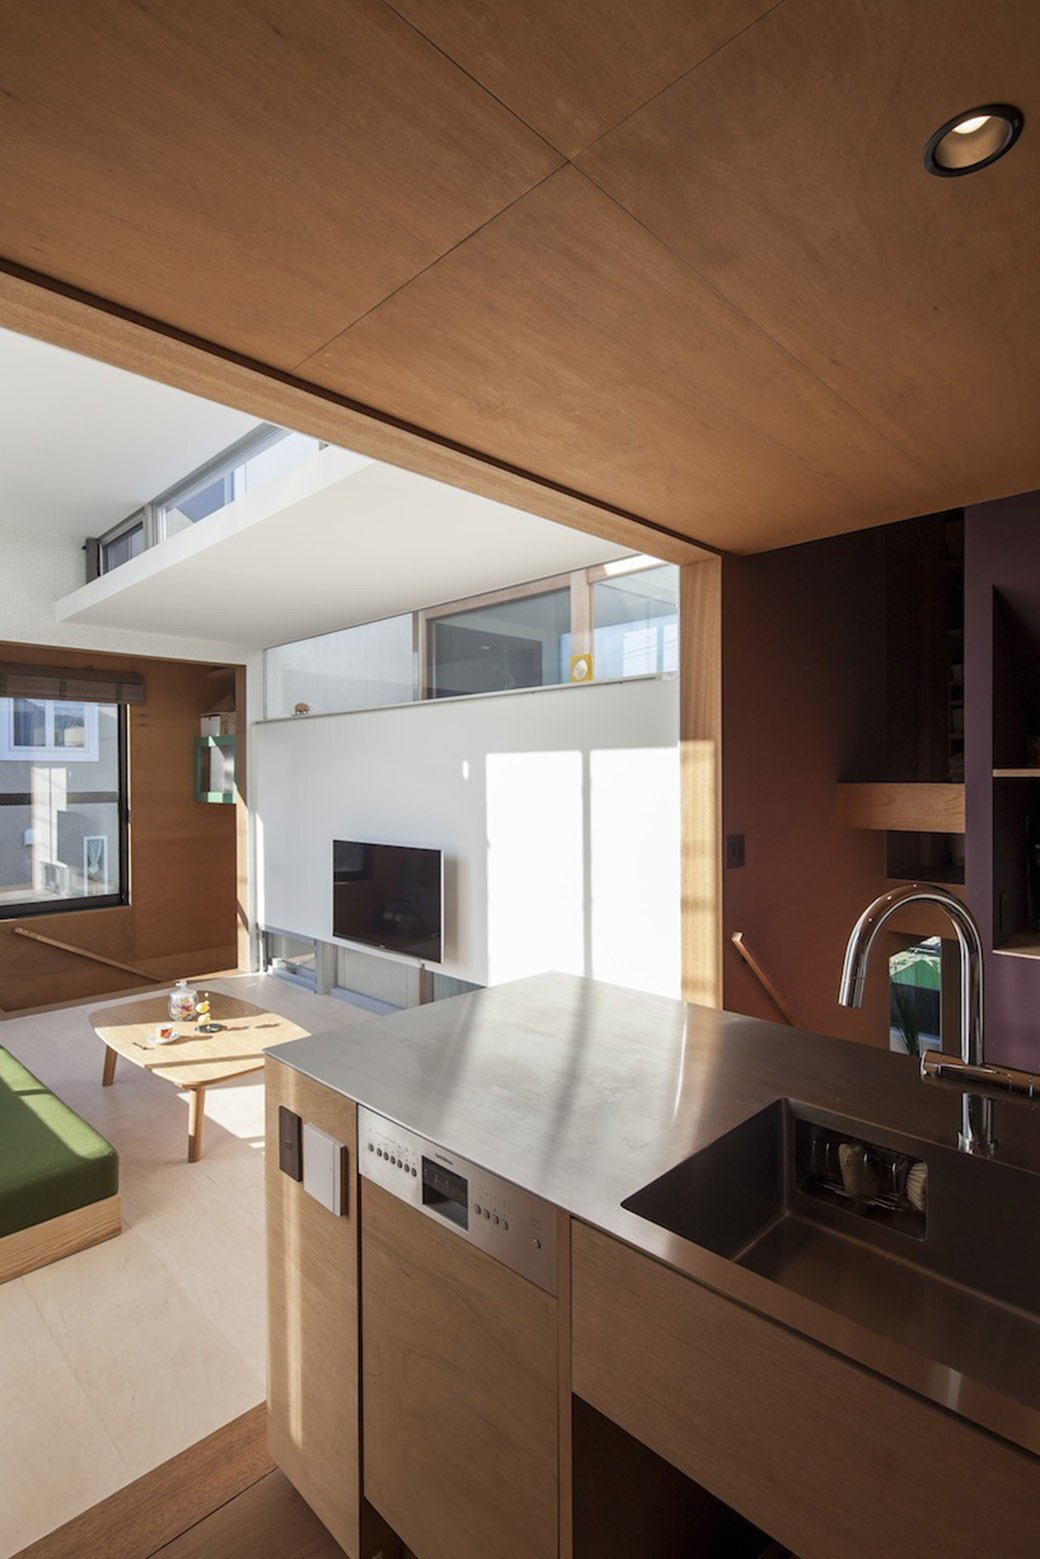 SEPA - Small House -S Shintaro Matsushita + Takashi Suzuk - Japan - Kitchen - Humble Homes